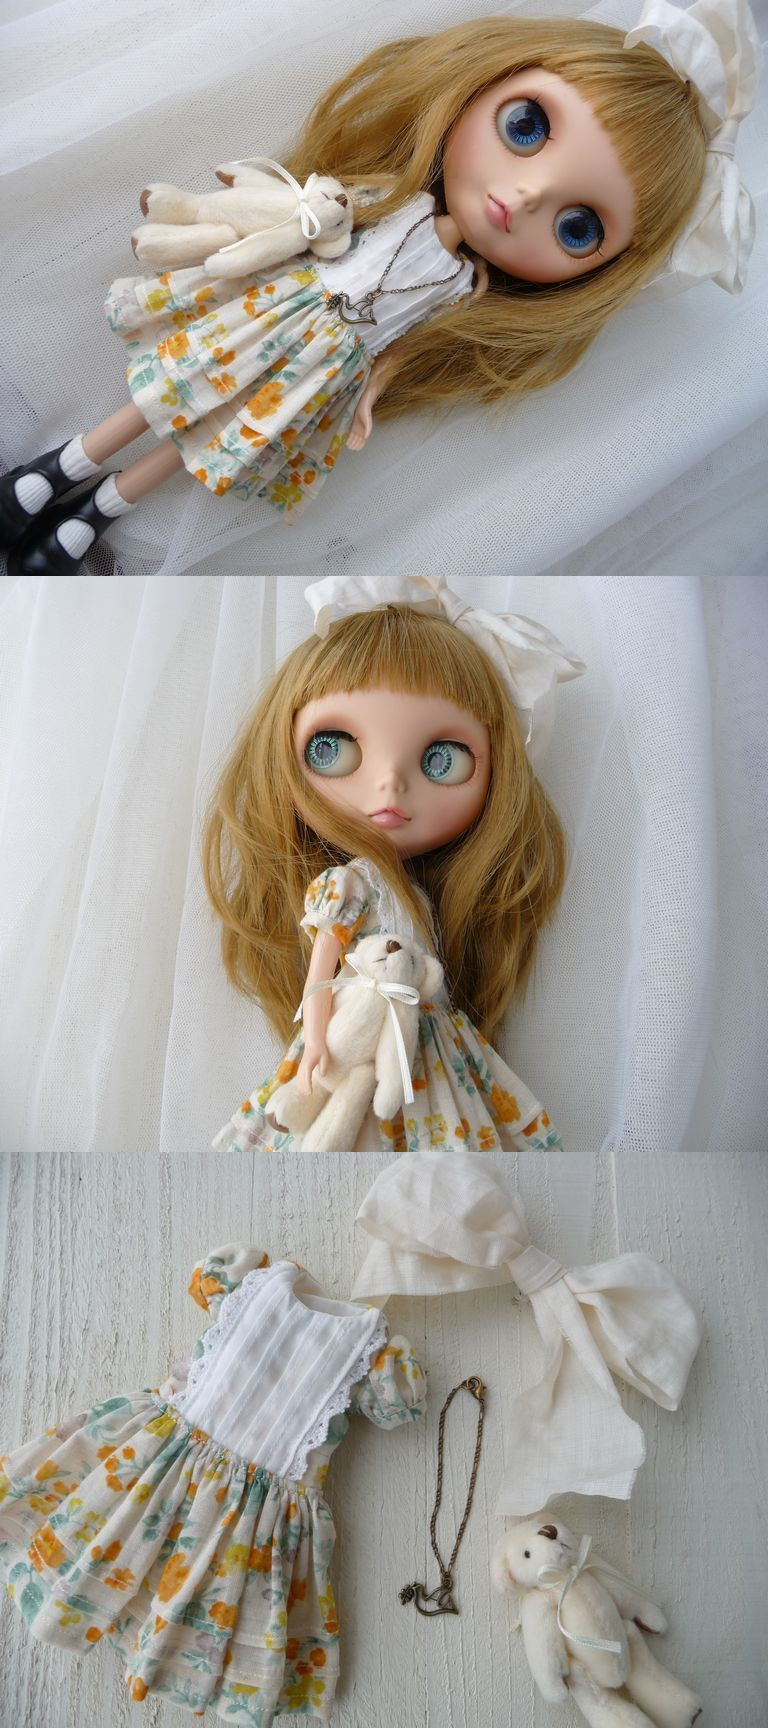 ◆cocoa*◆Blythe outfit◆小花柄のワンピース - ヤフオク!